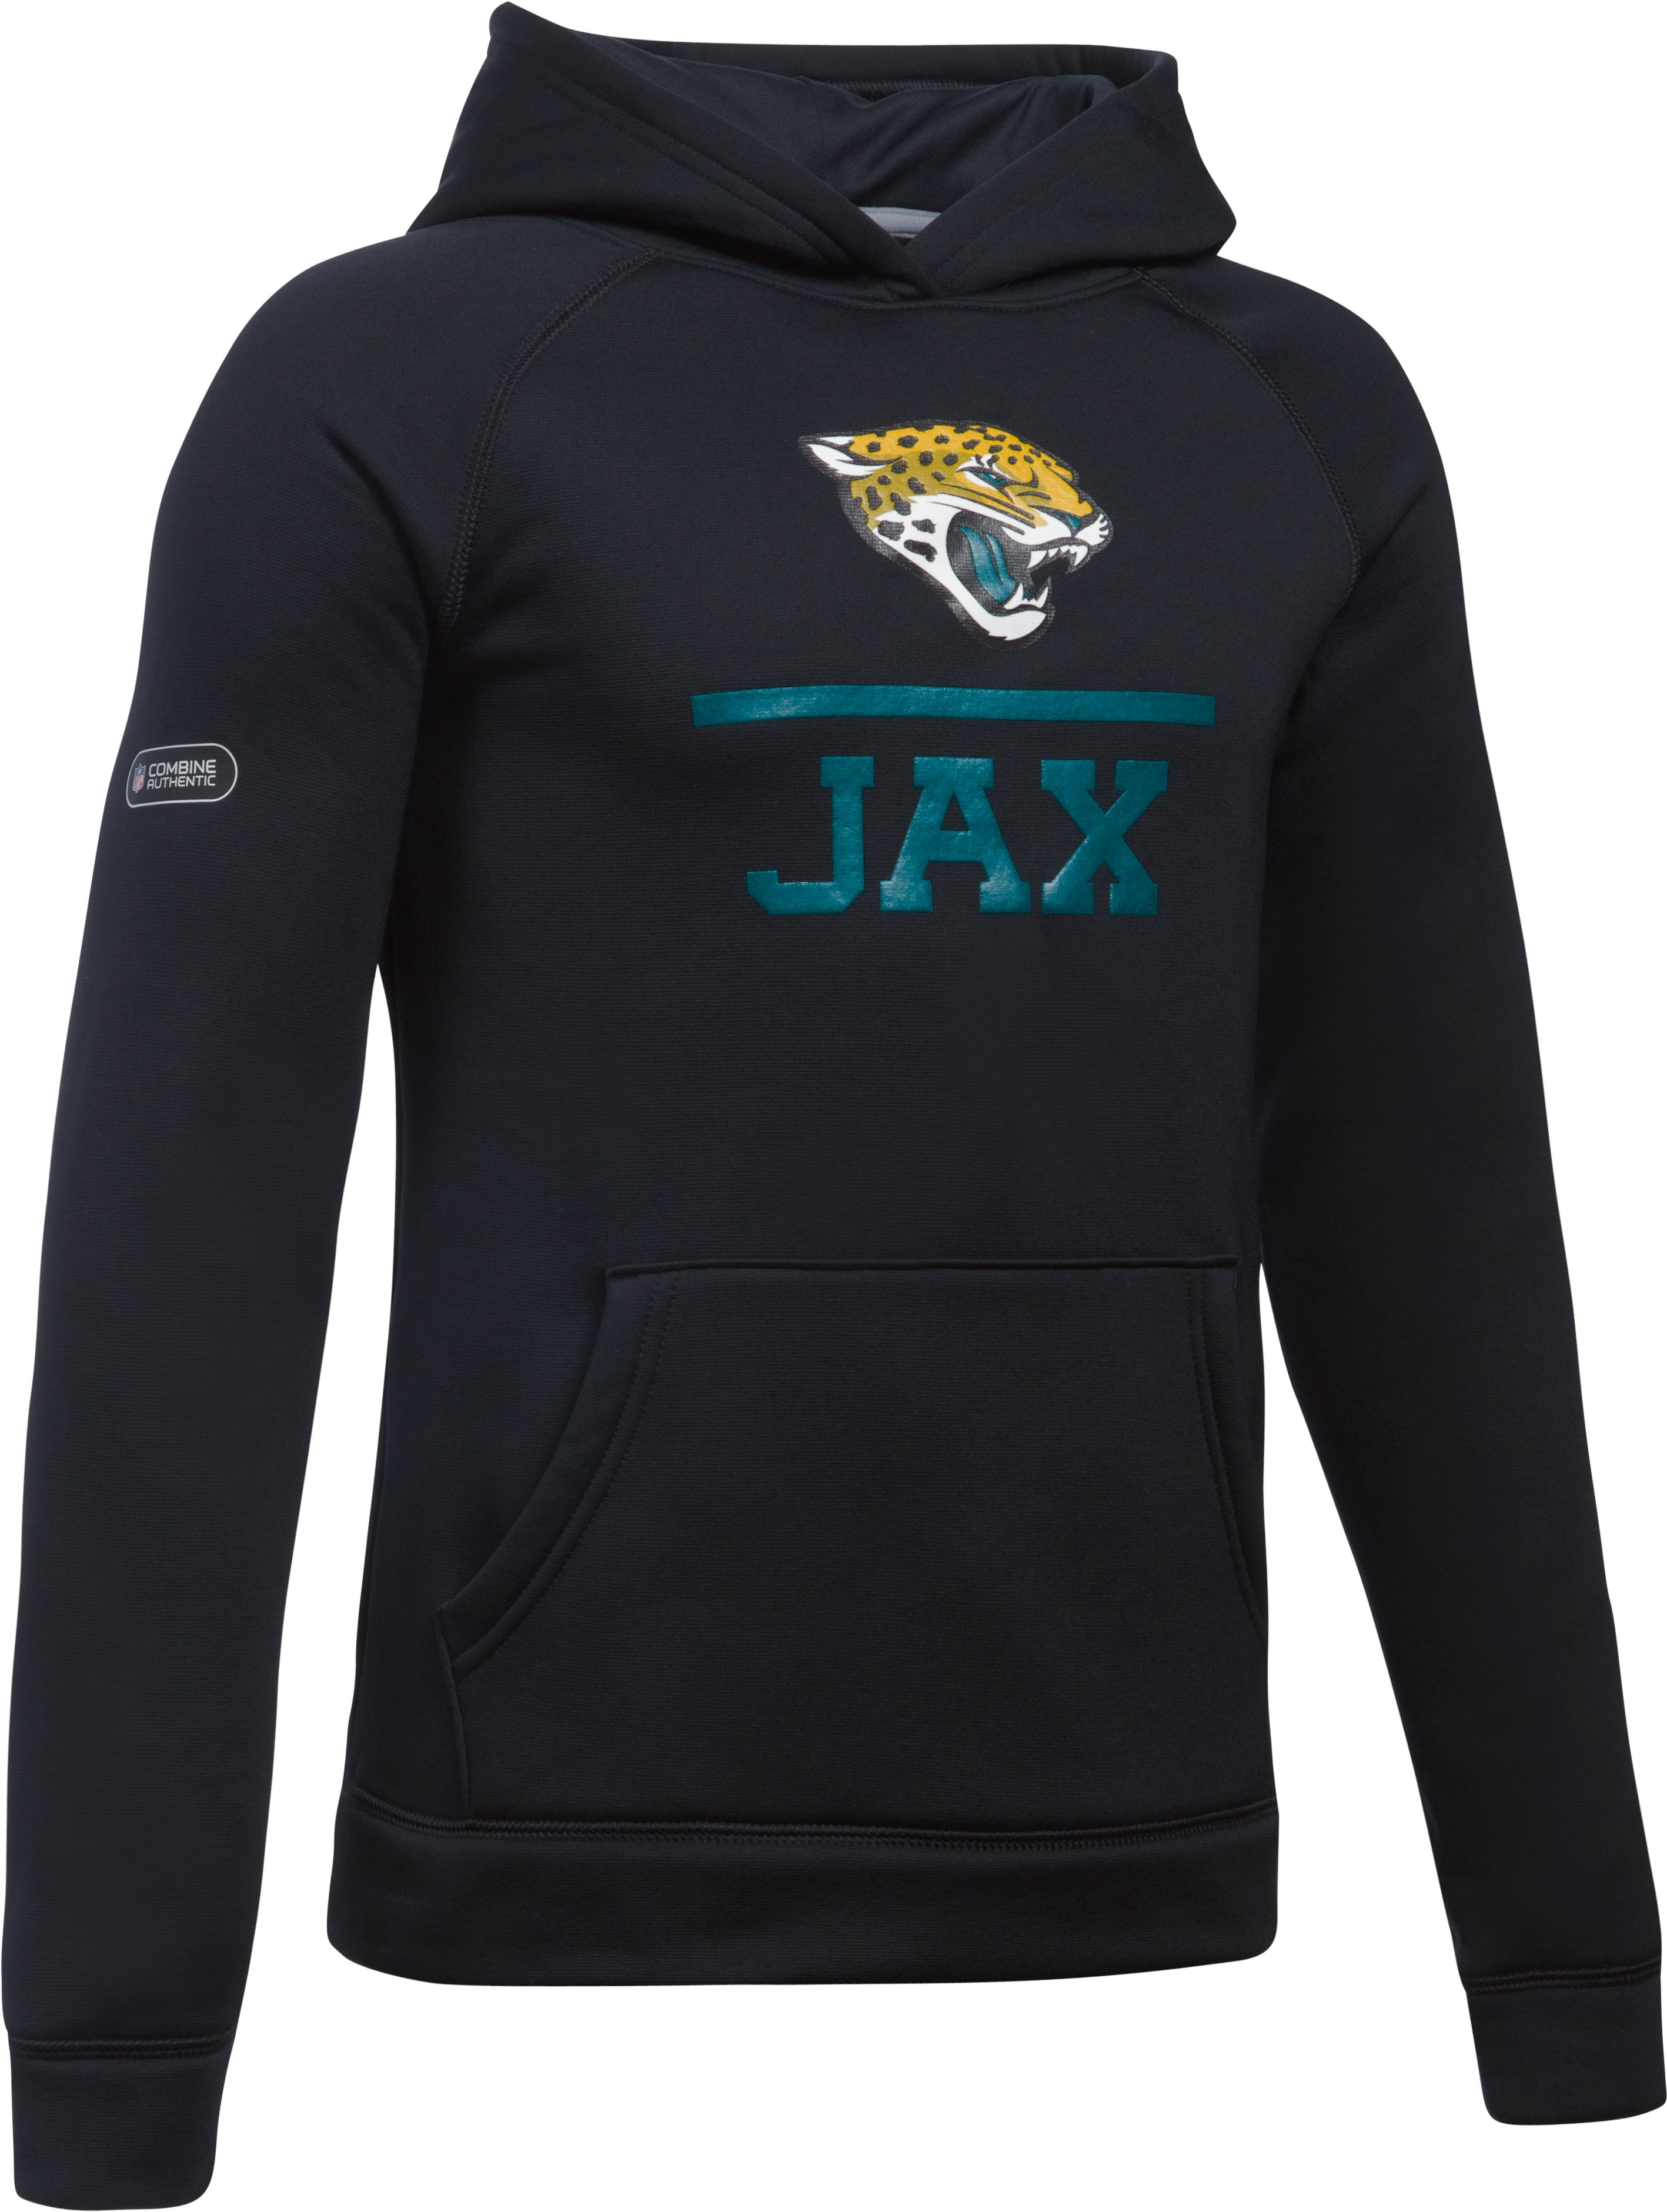 Boys' NFL Combine Authentic UA Storm Team Lockup Hoodie, Jacksonville Jaguars,